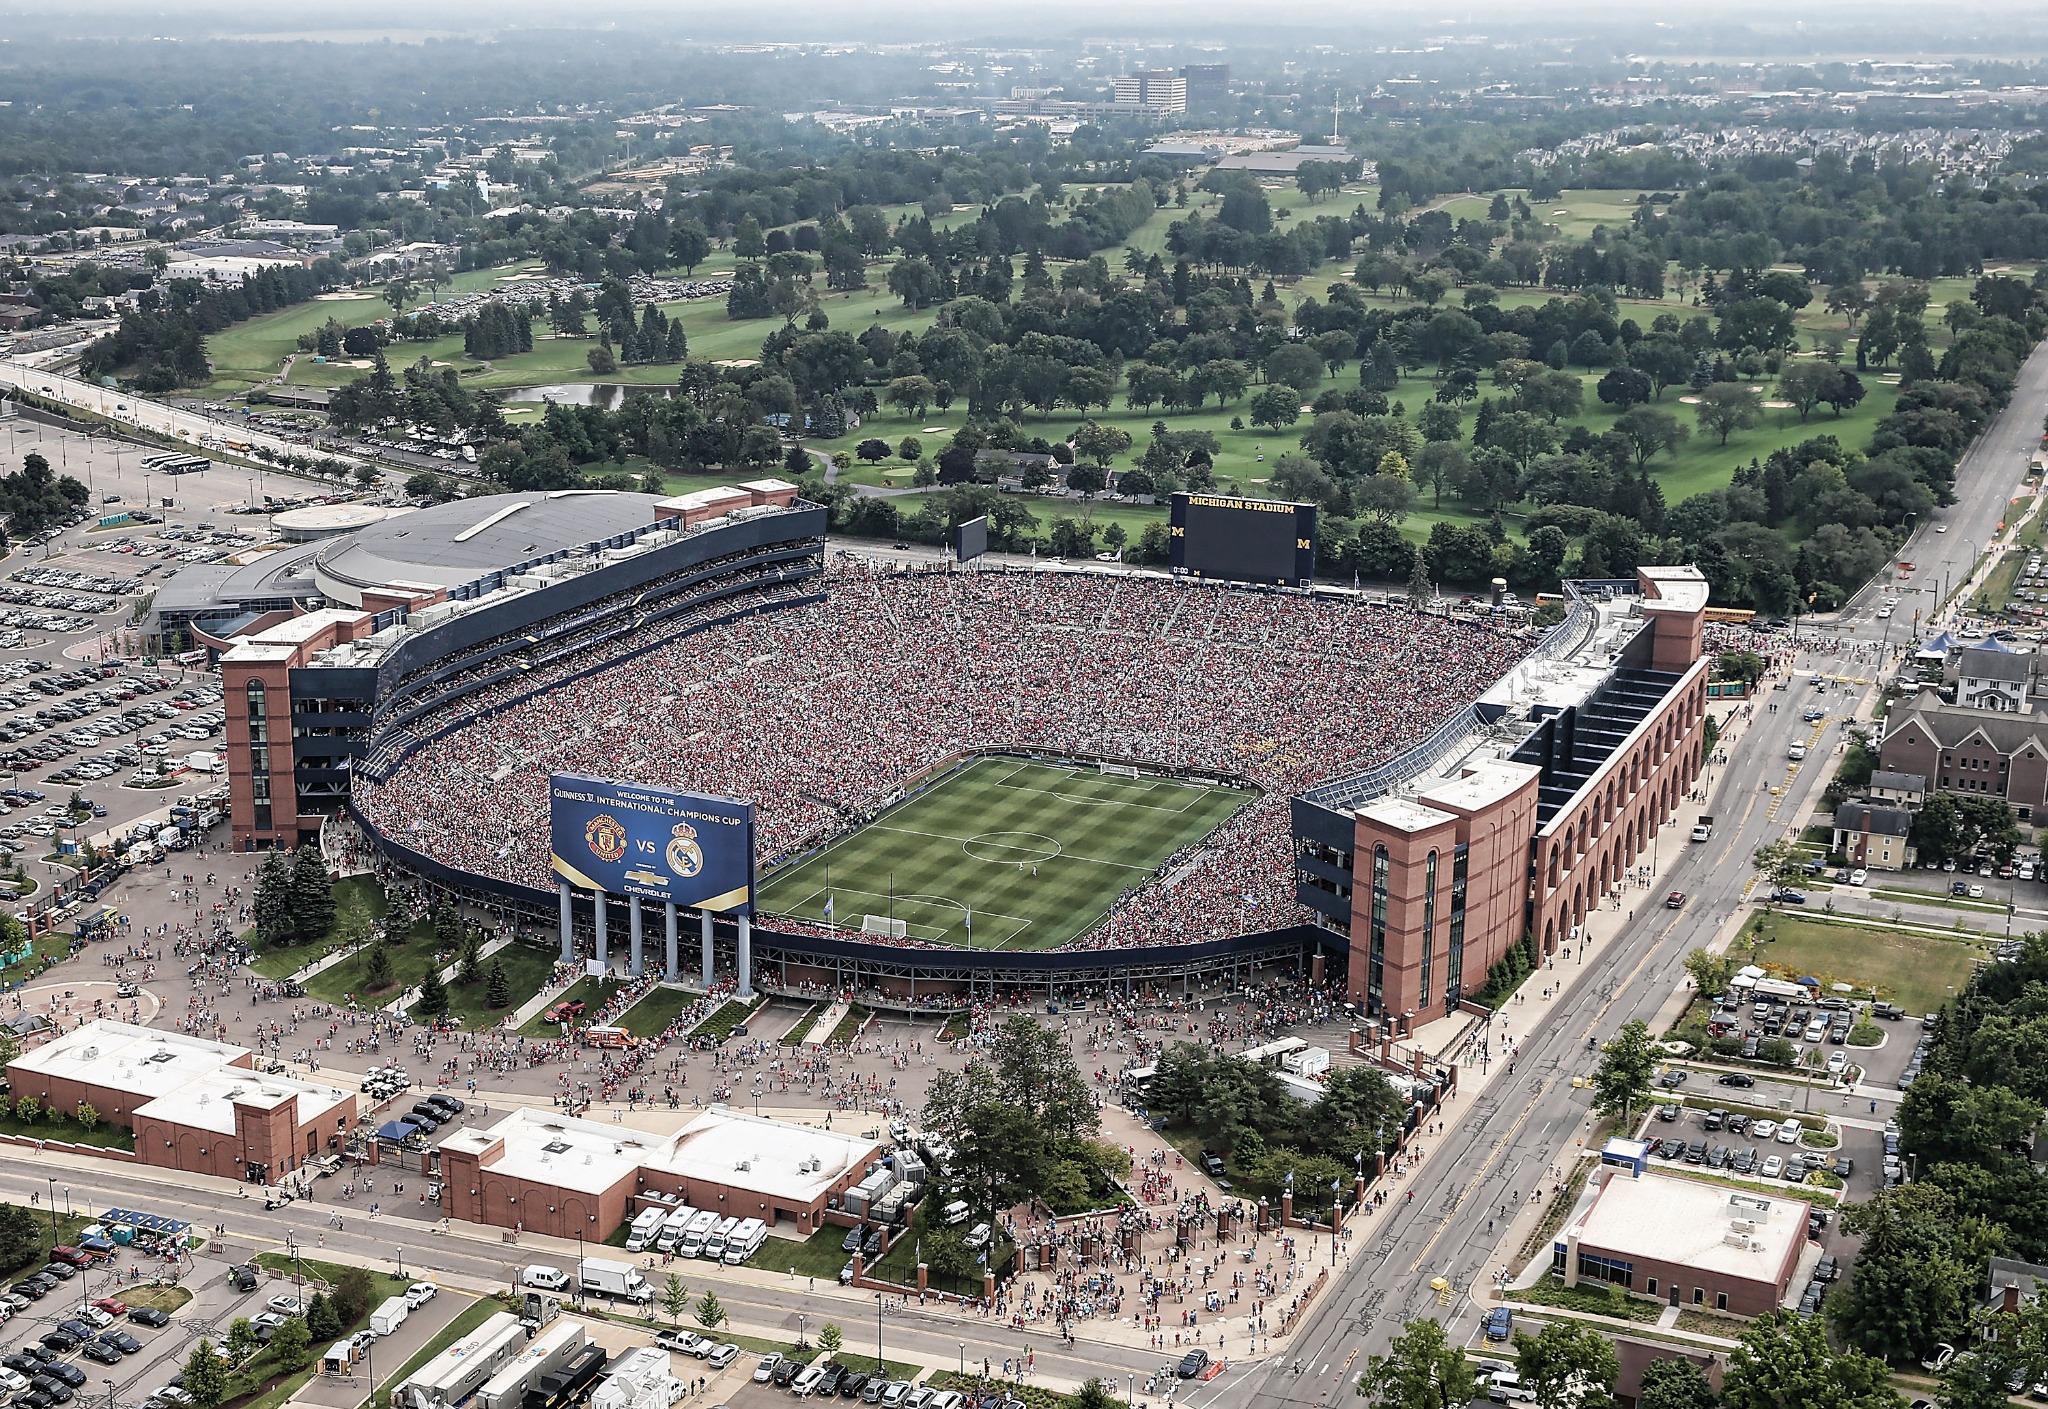 109,318 watch Manchester United-Real Madrid at The Big House, breaking attendance record for soccer game held in U.S. http://t.co/D57gzwrfEn